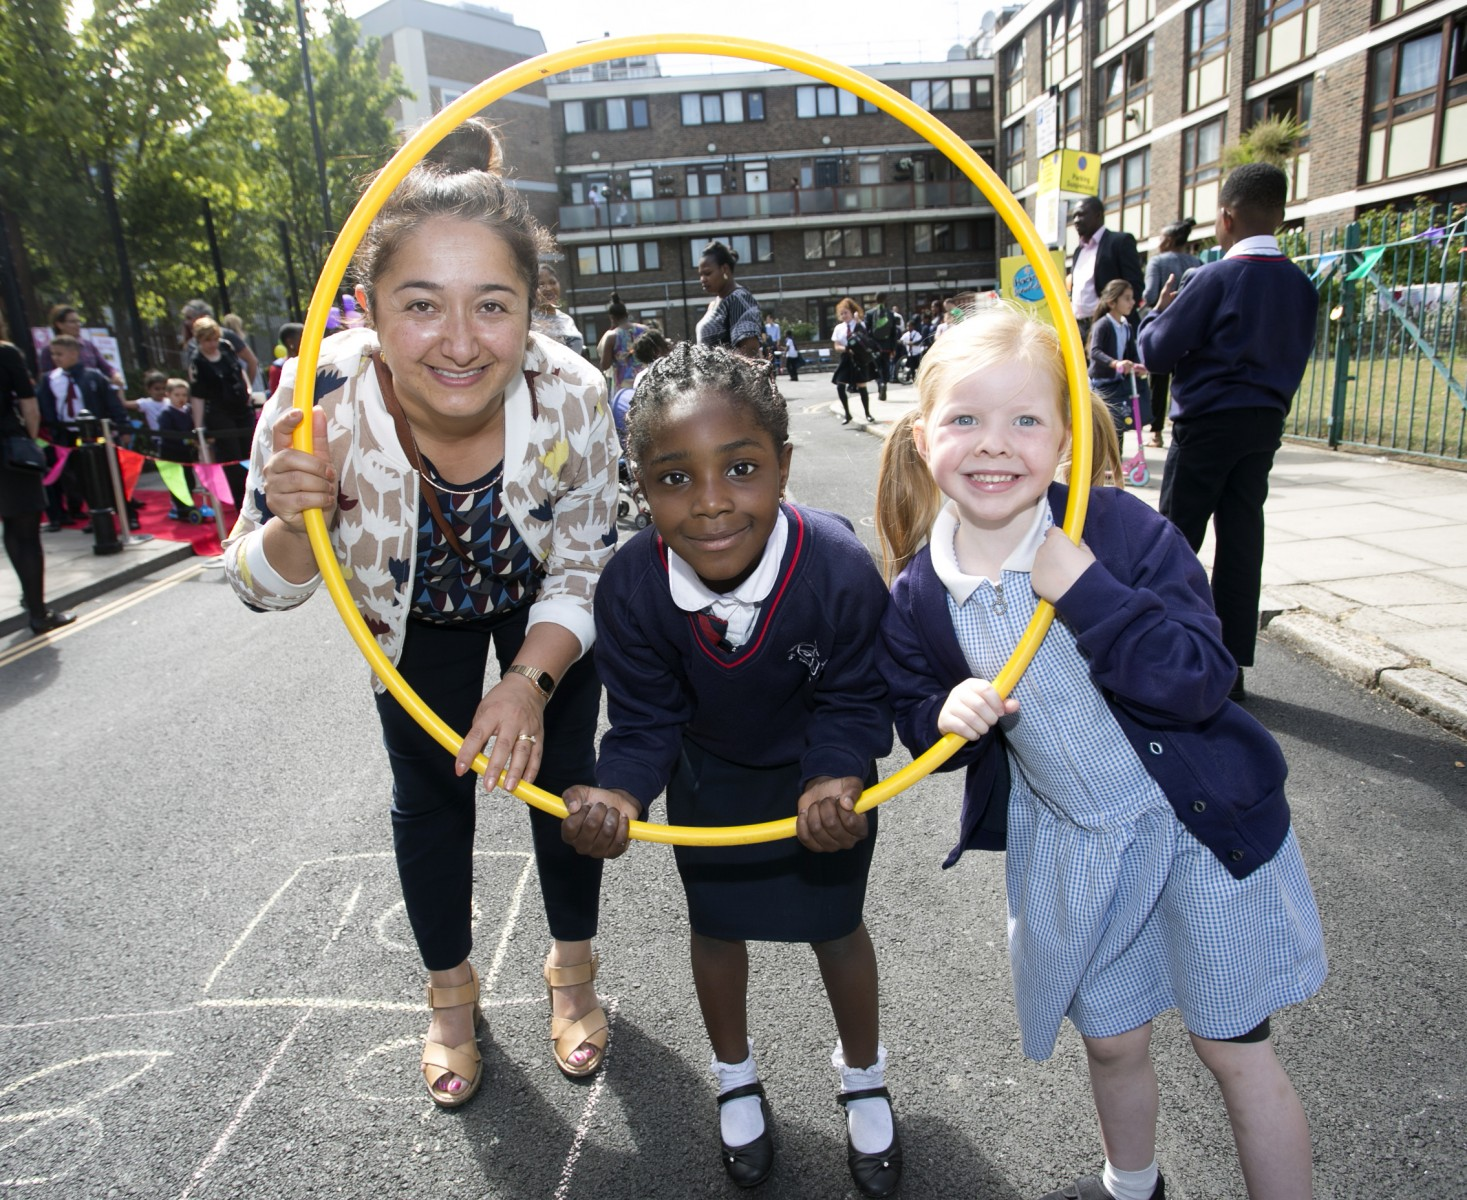 Cllr Feryal Demirci at St John the Baptist School Street, which has now been made permanent. Picture - Hackney Council